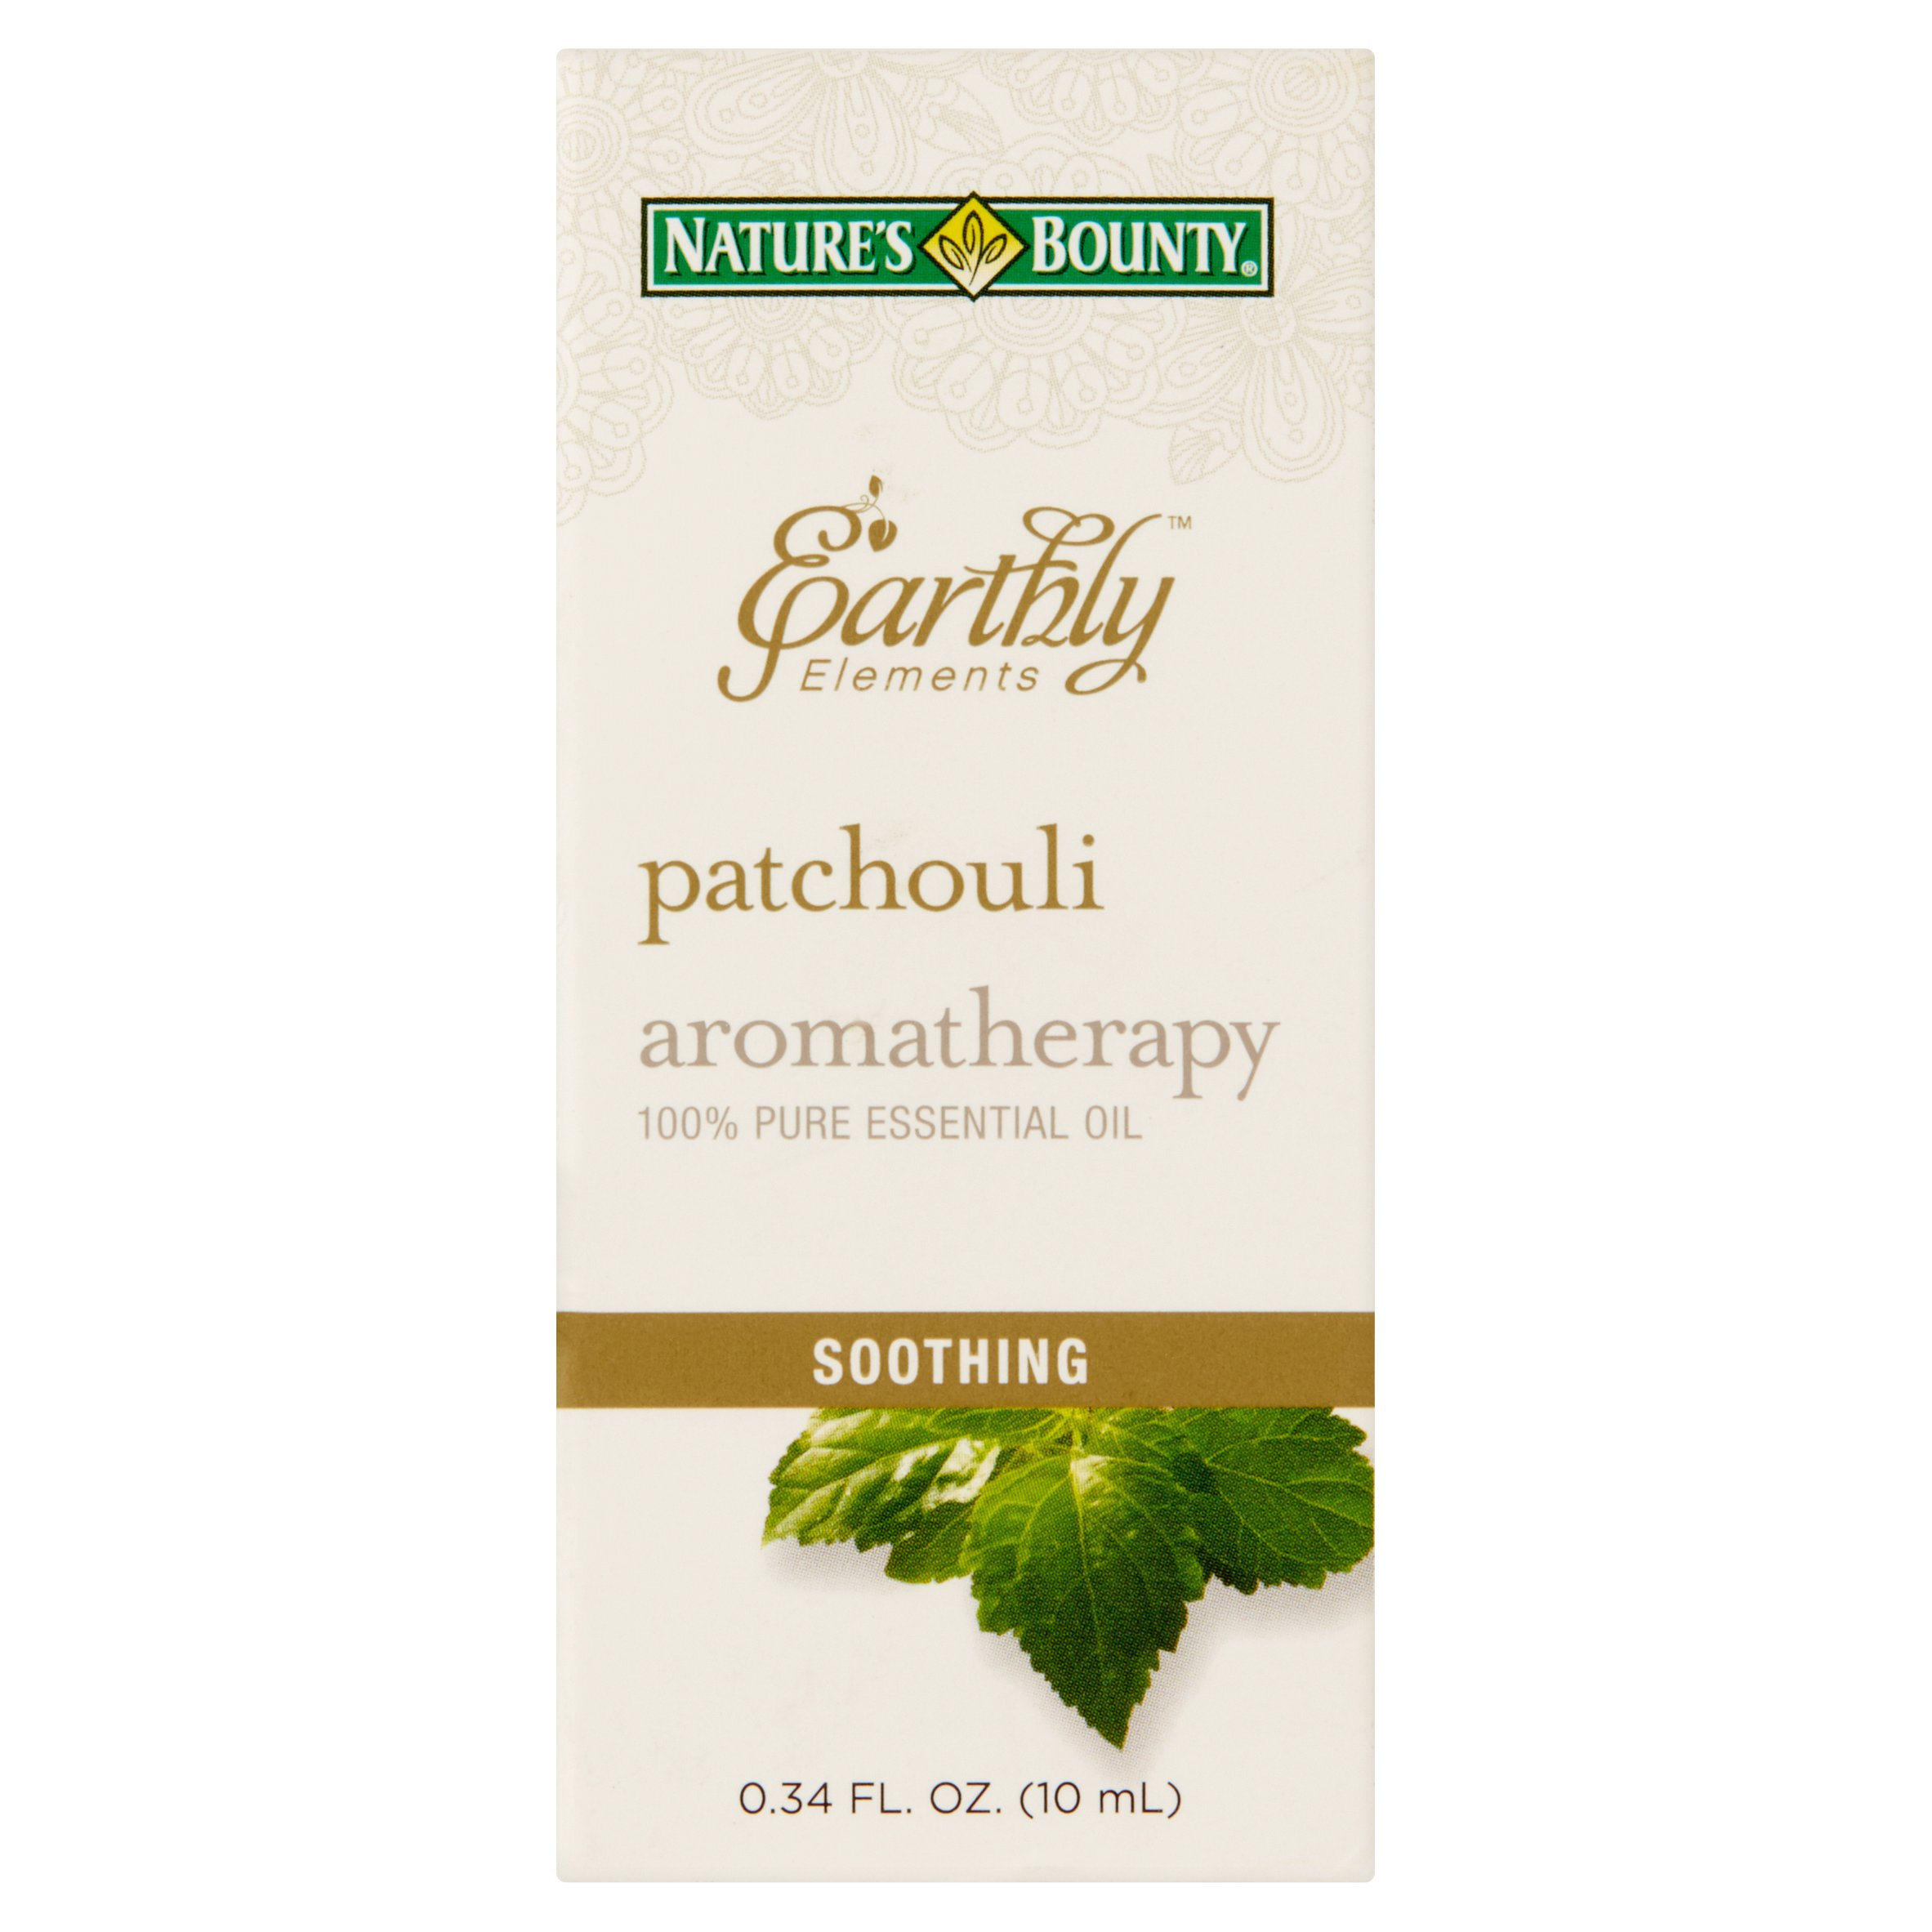 Nature's Bounty® Earthly Elements Patchouli Essential Oil, 0.34 Fl Oz.